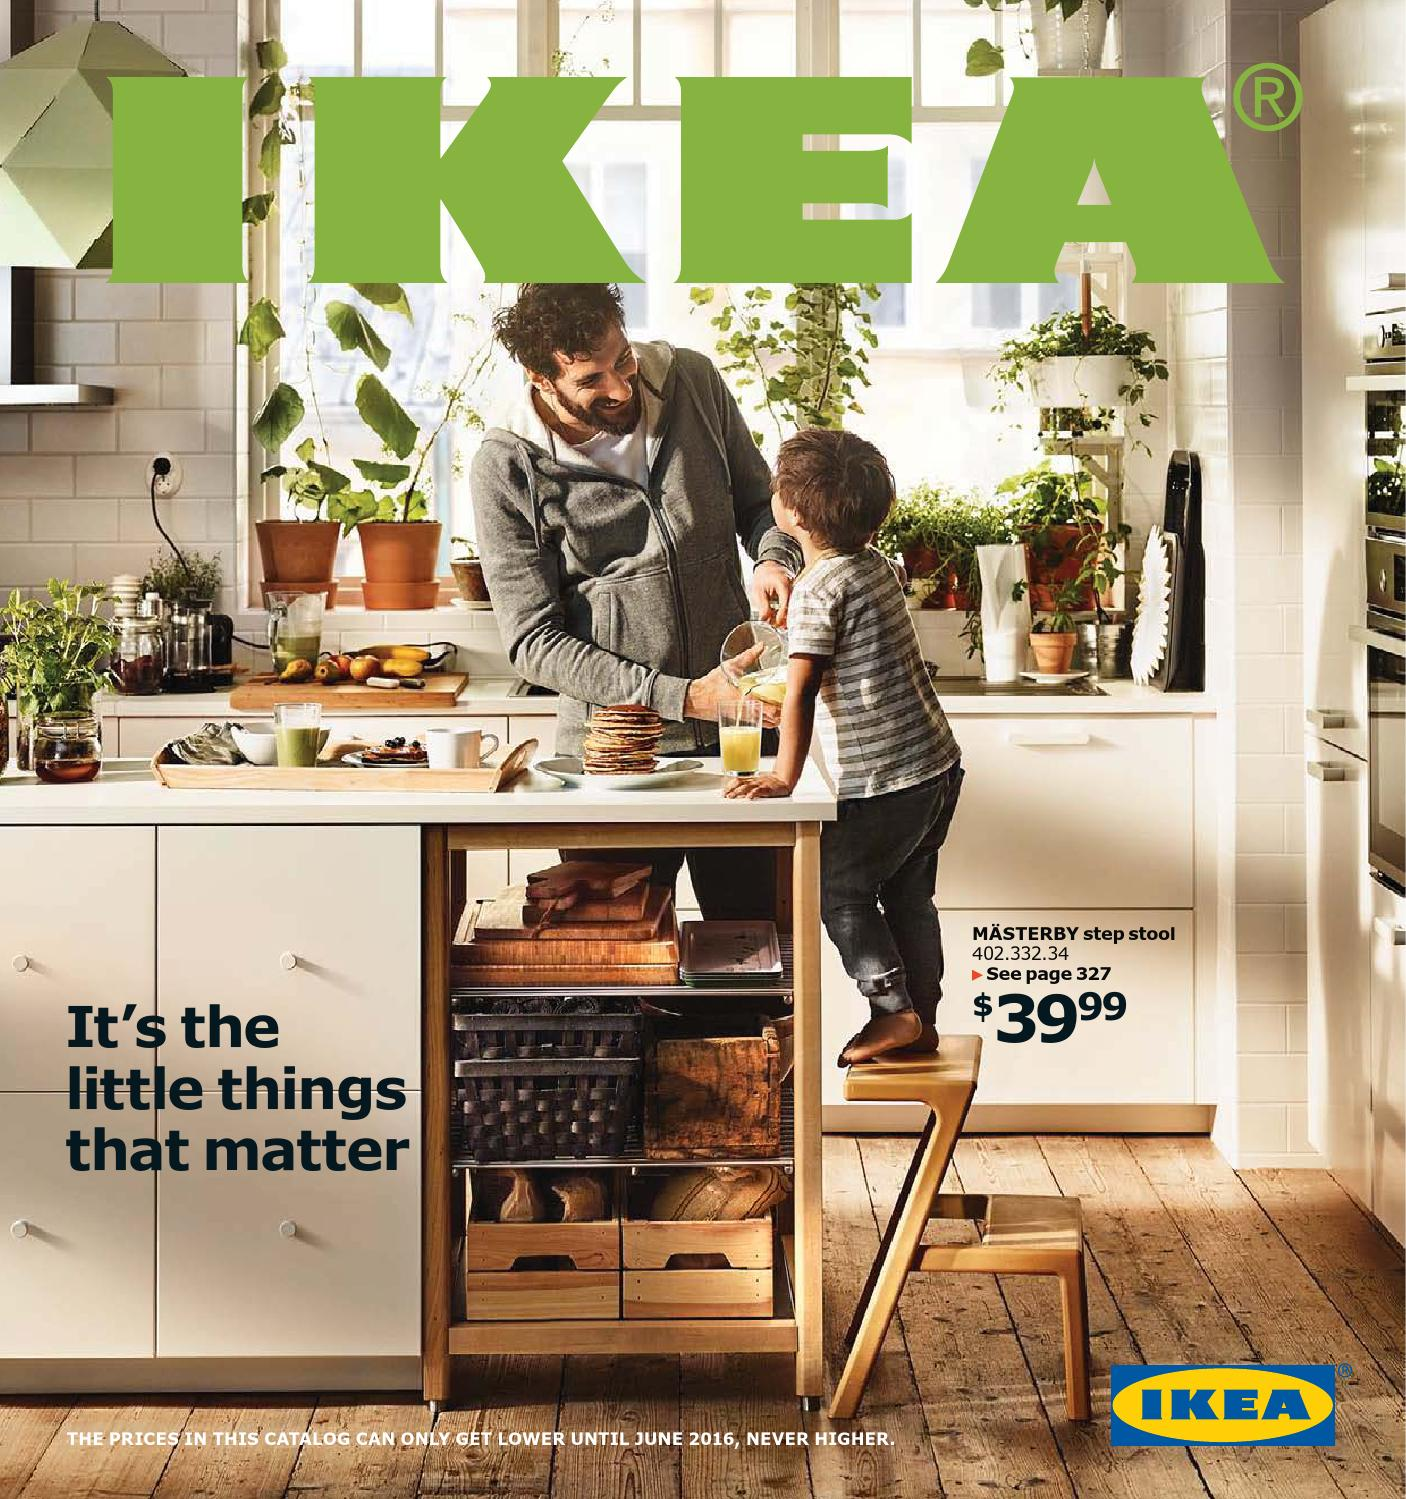 Il Catalogo Ikea 2016   BergamoPost By Bergamo Post   Issuu